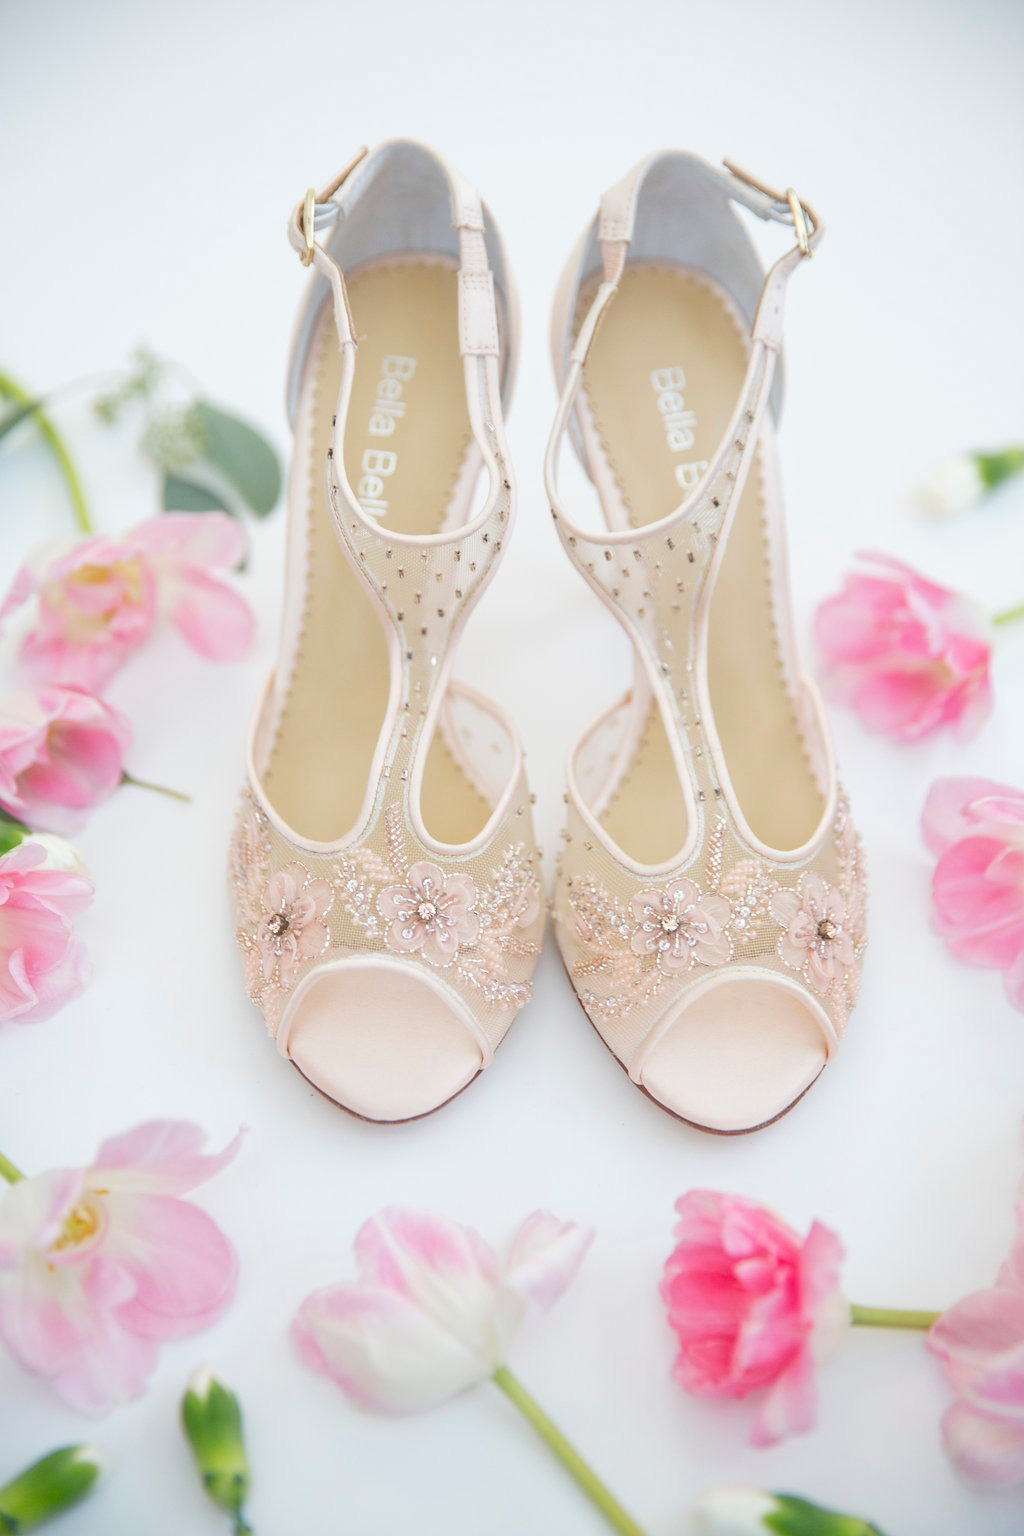 Anyone else love the blush details of our beloved Paloma Blush? See more at @bellabelleshoes